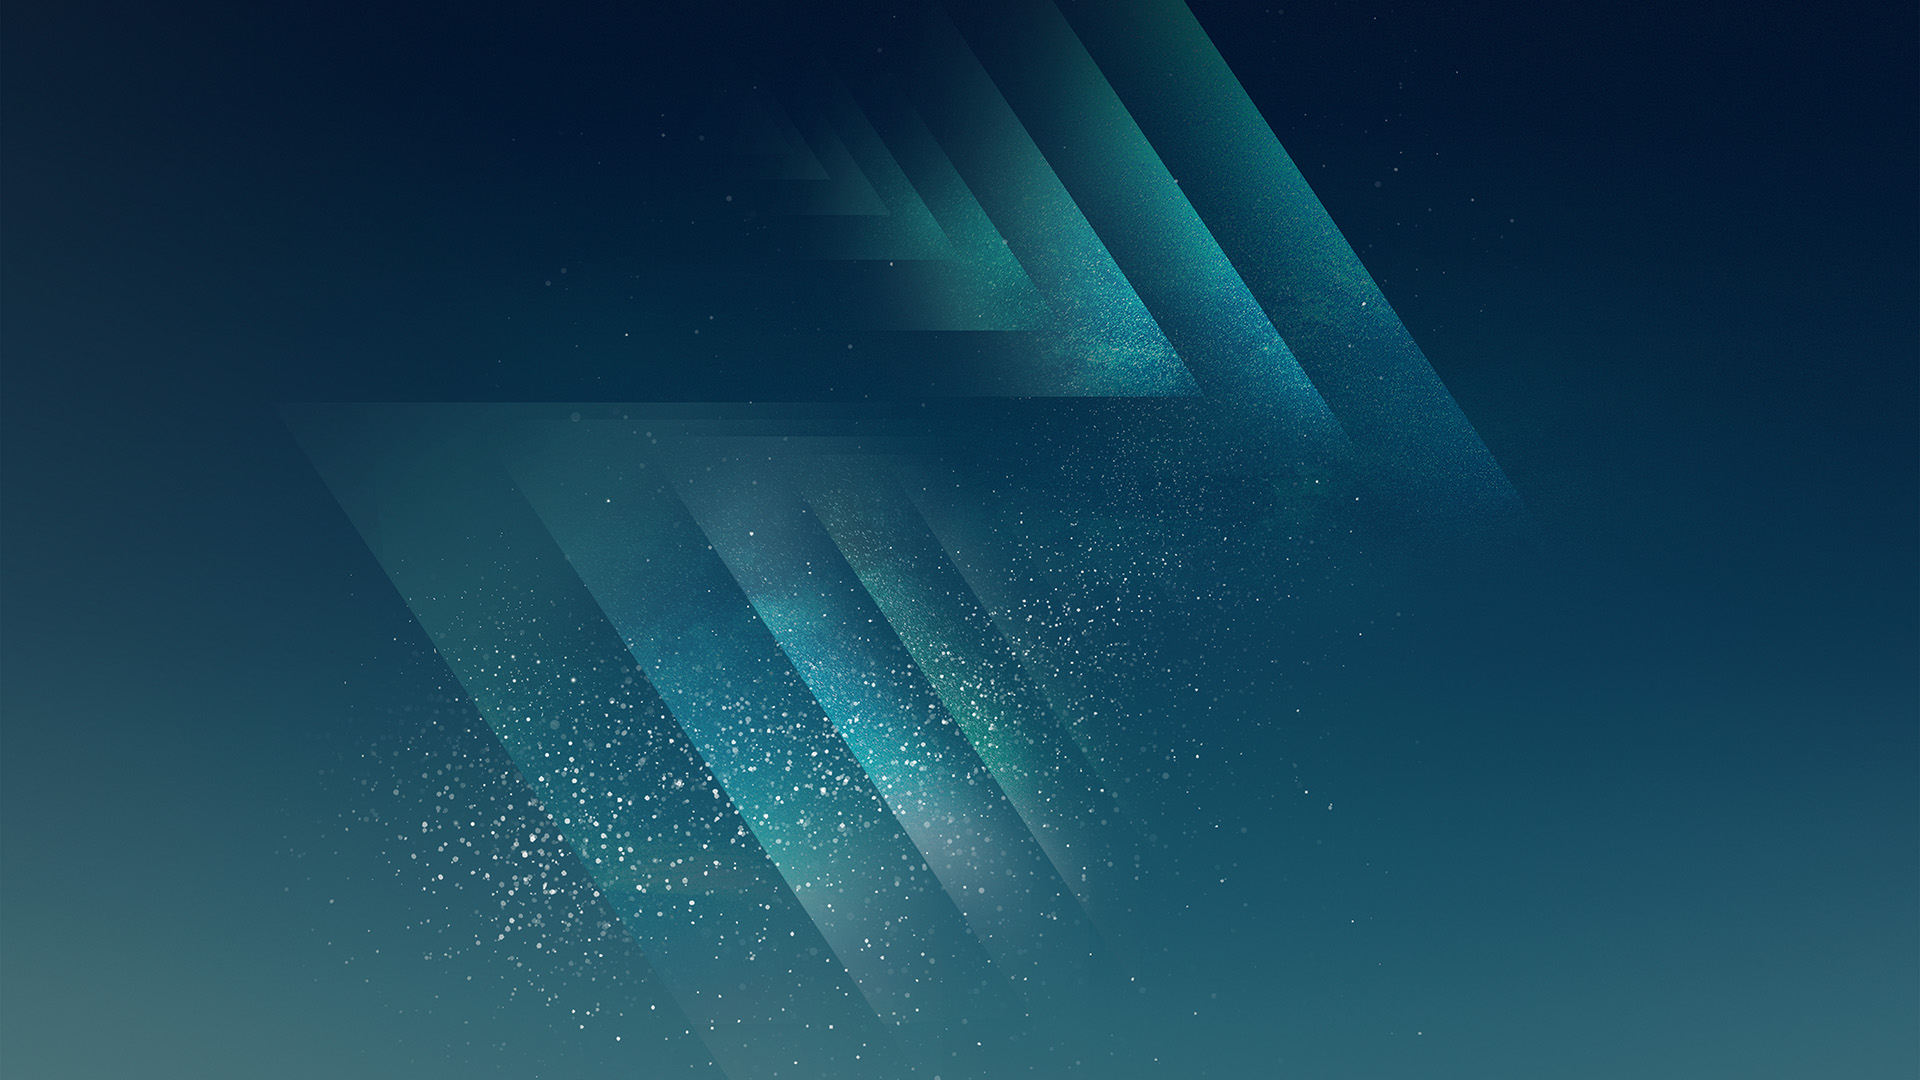 Vw08 Galaxy S8 Android Dark Blue Star Pattern Background